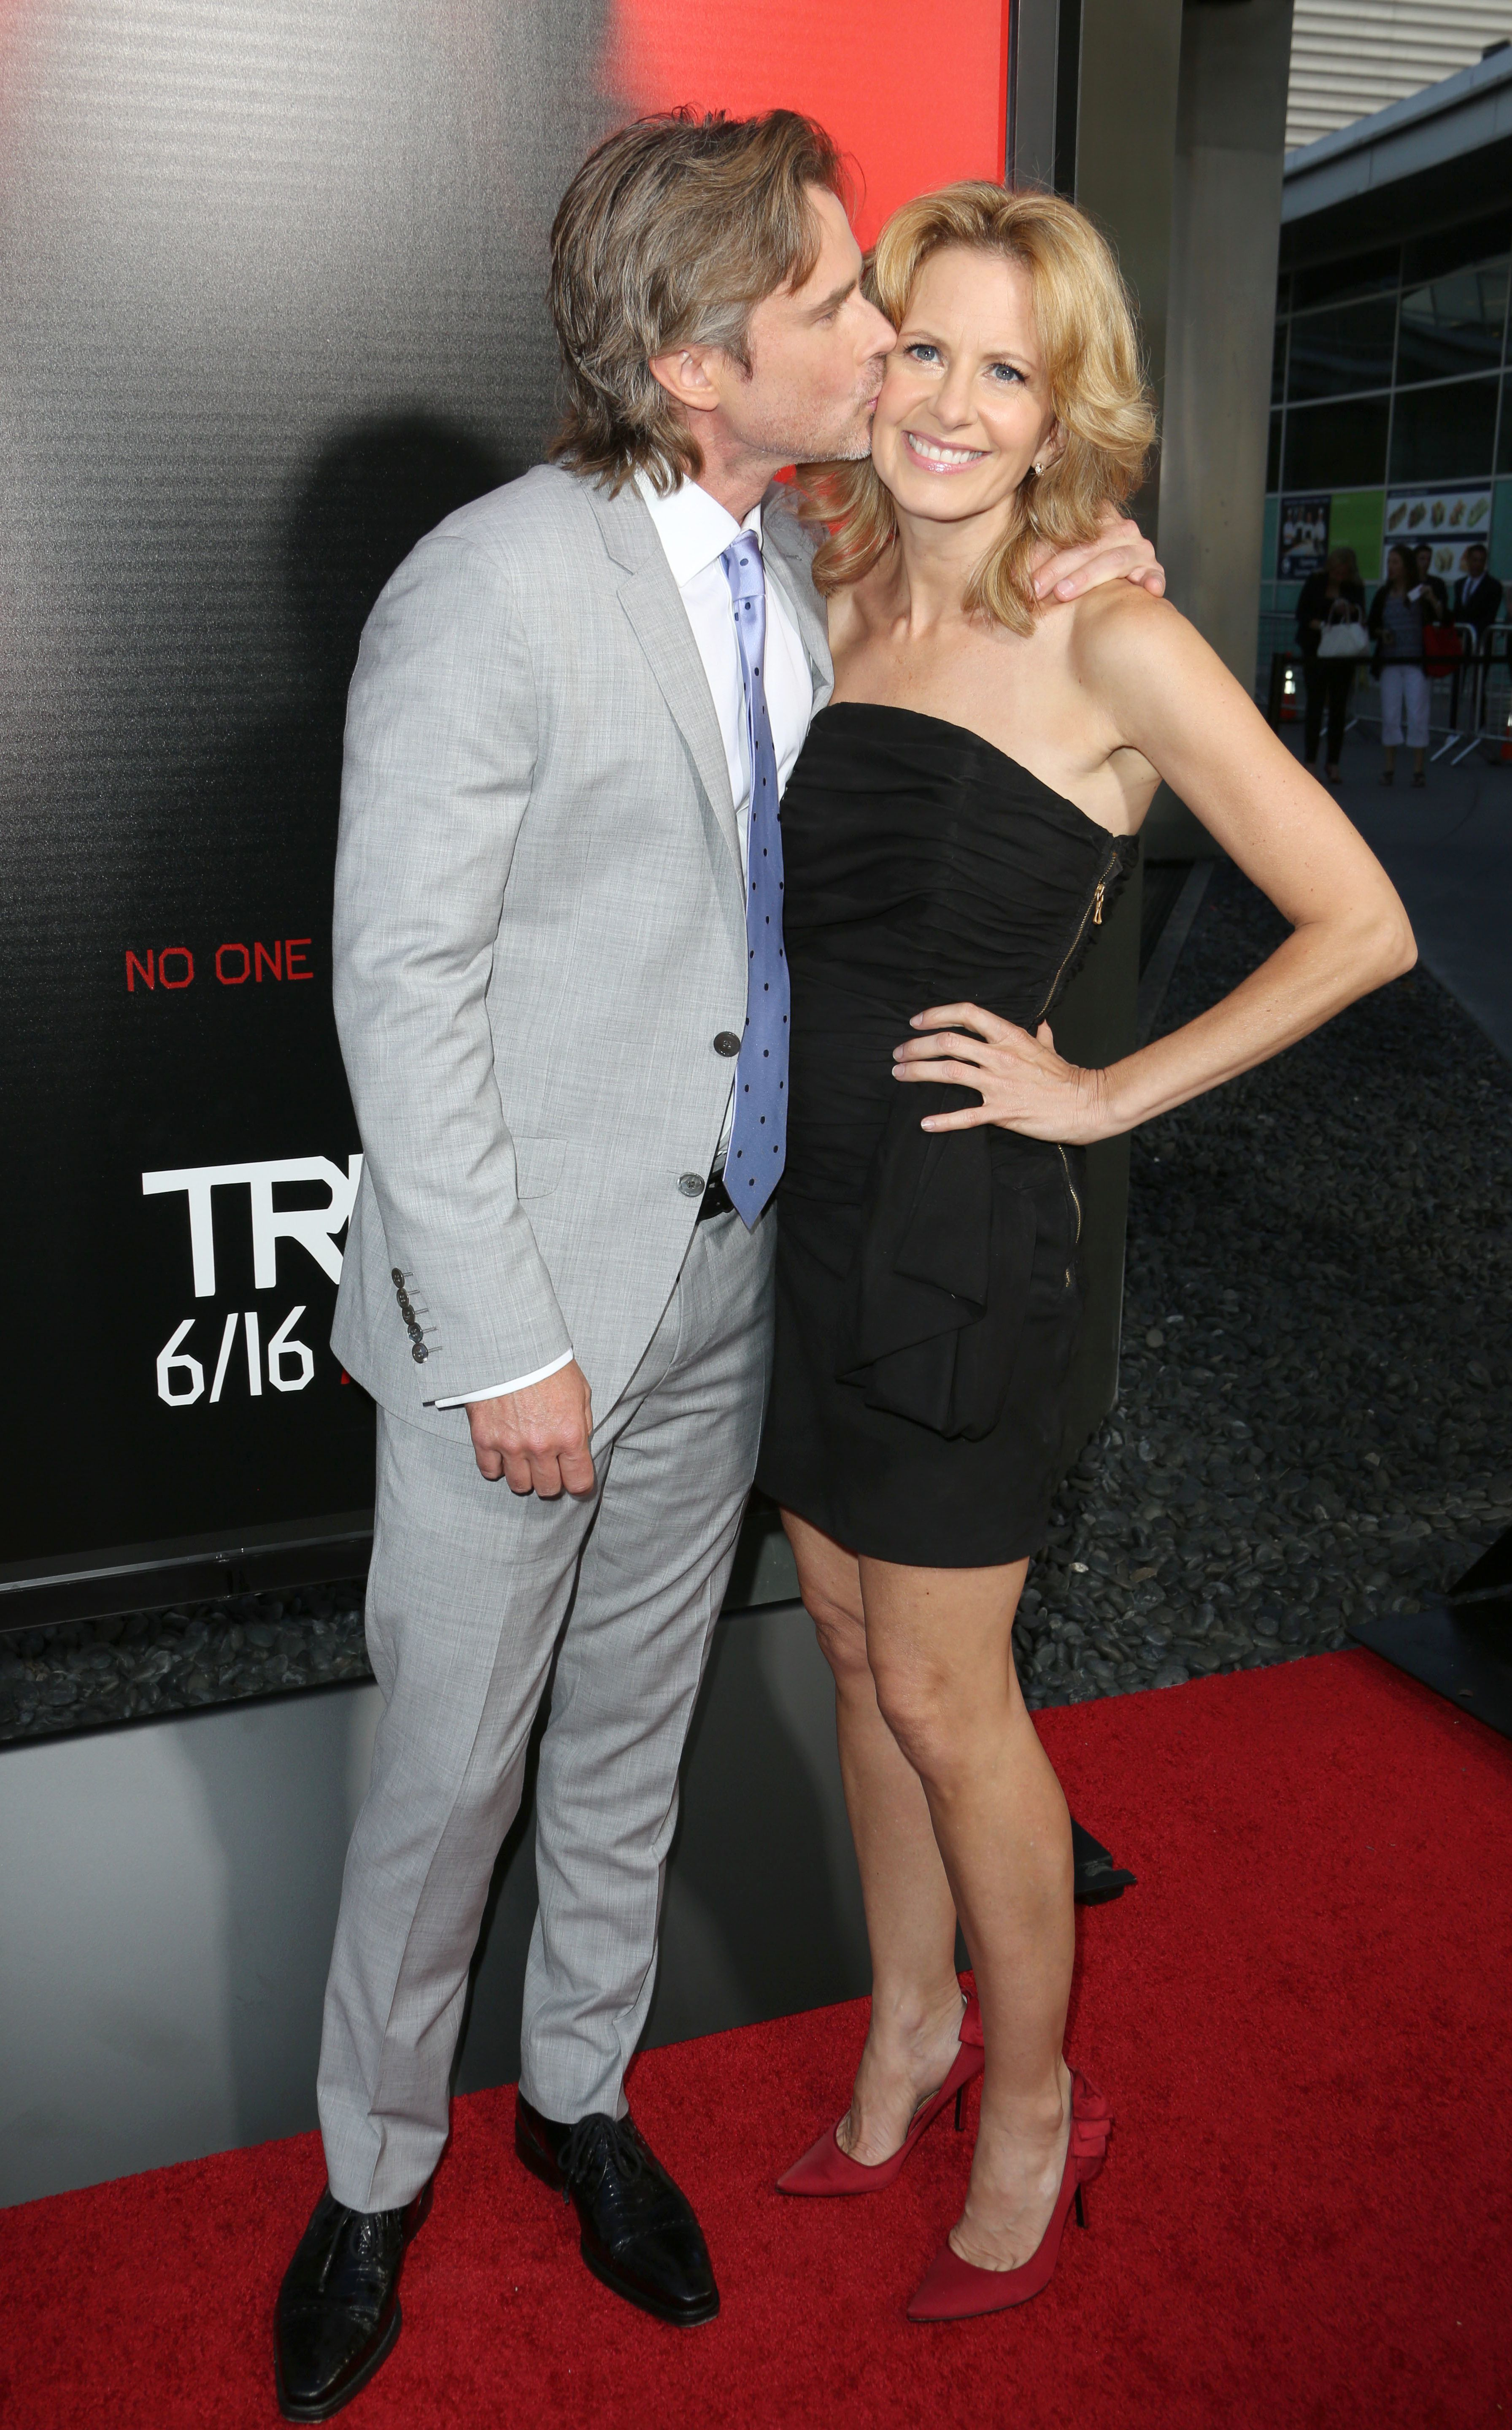 Sam Trammell missy yager pda